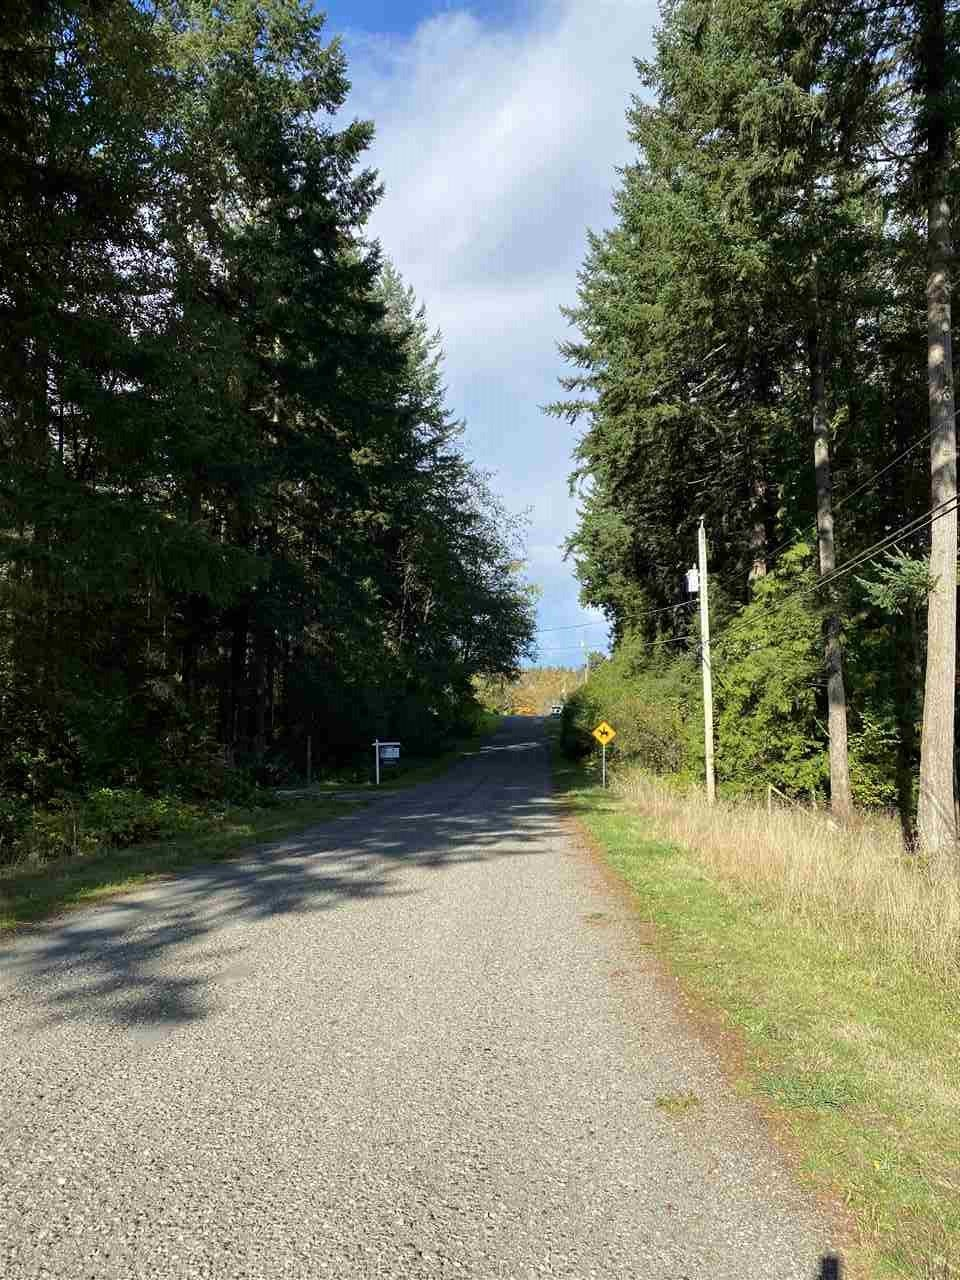 SL.1 161 208 STREET - Campbell Valley  for sale(R2511642) - #4